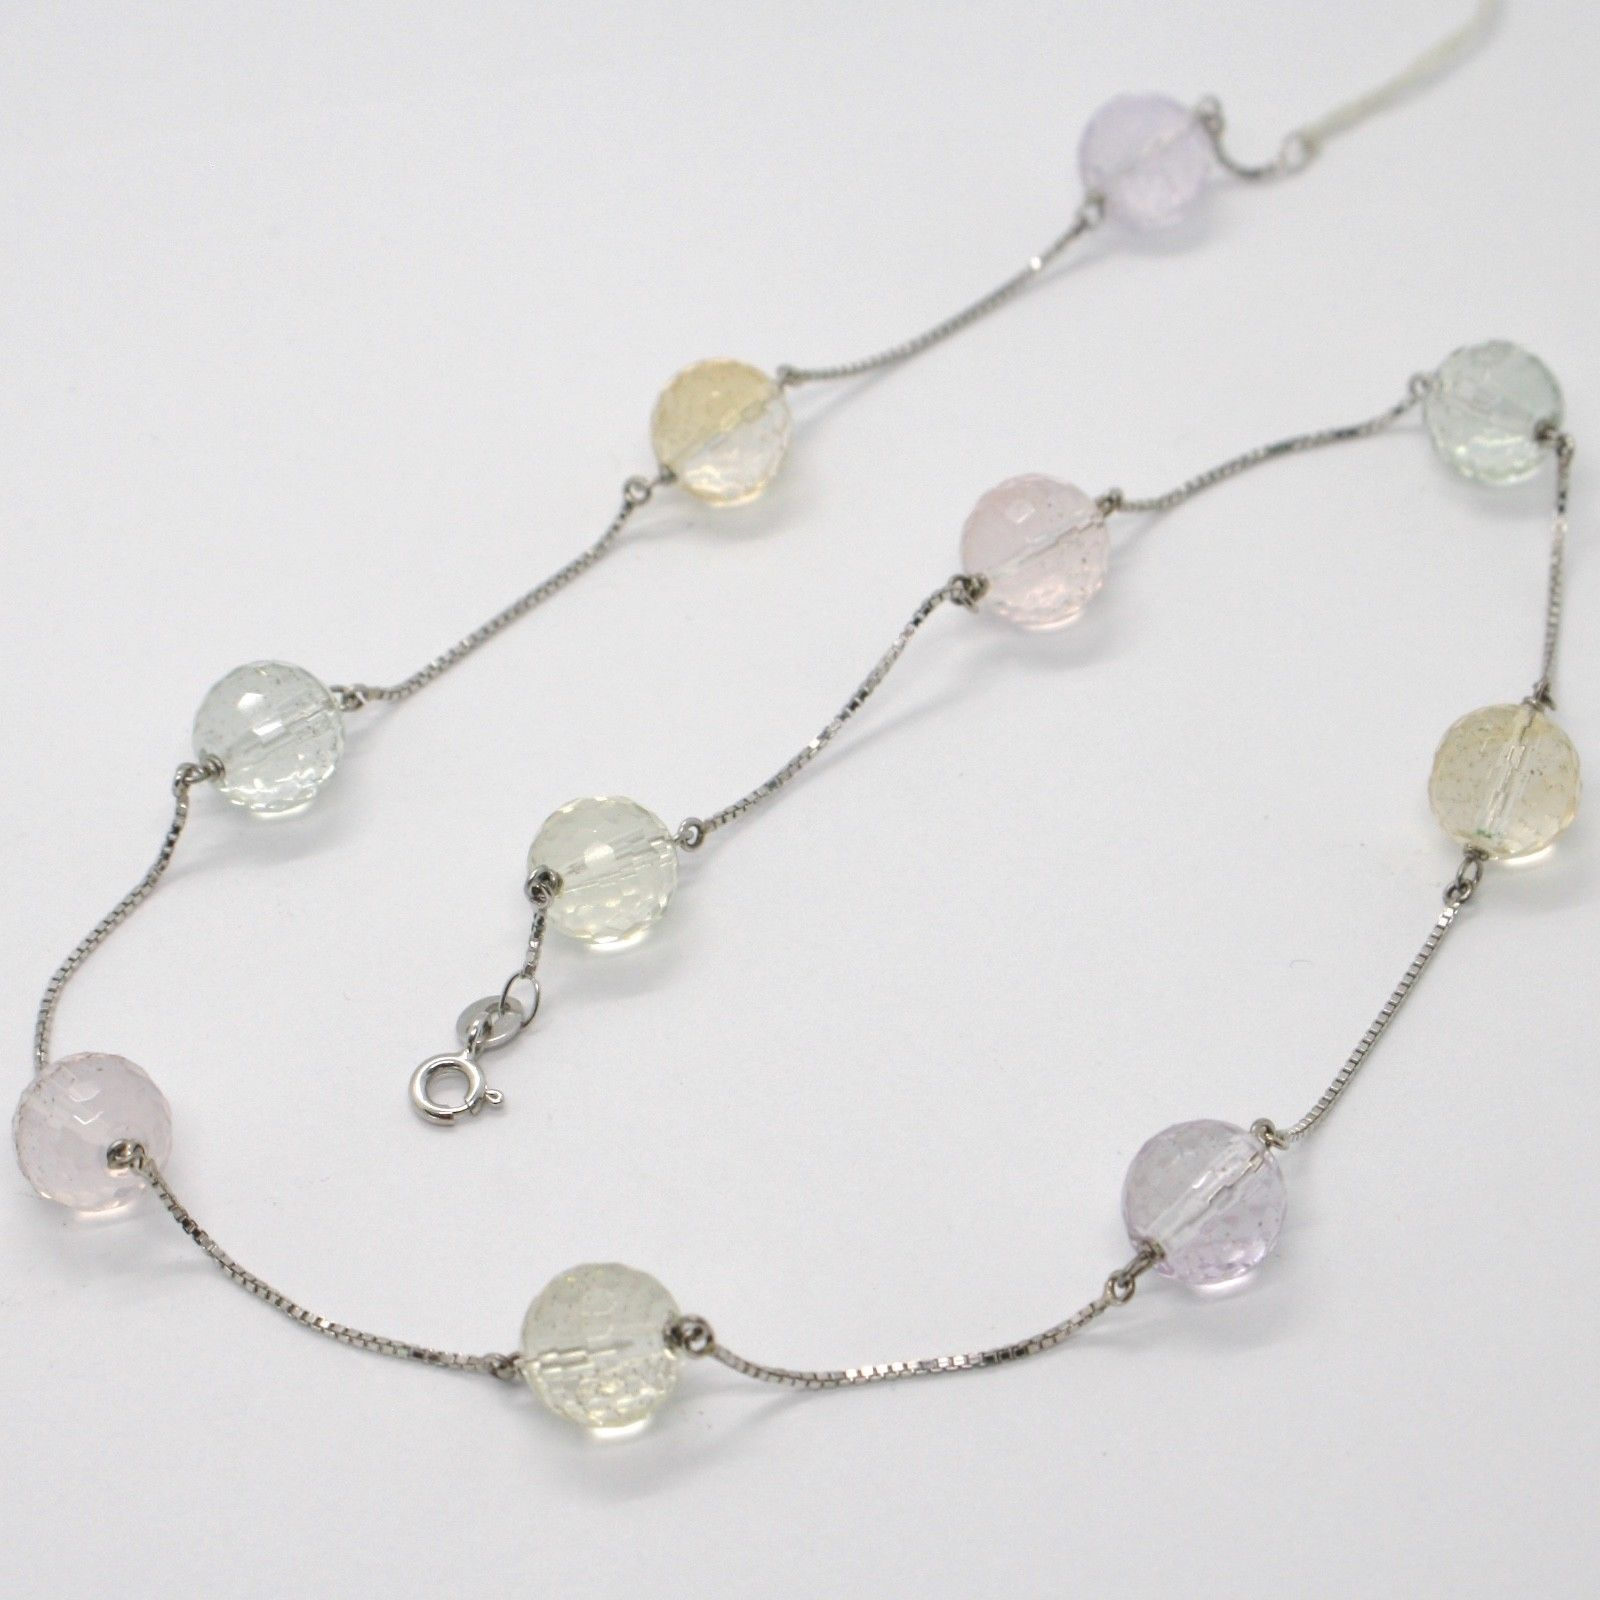 18K WHITE GOLD NECKLACE VENETIAN CHAIN FACETED CITRINE AMETHYST PRASIOLITE LEMON